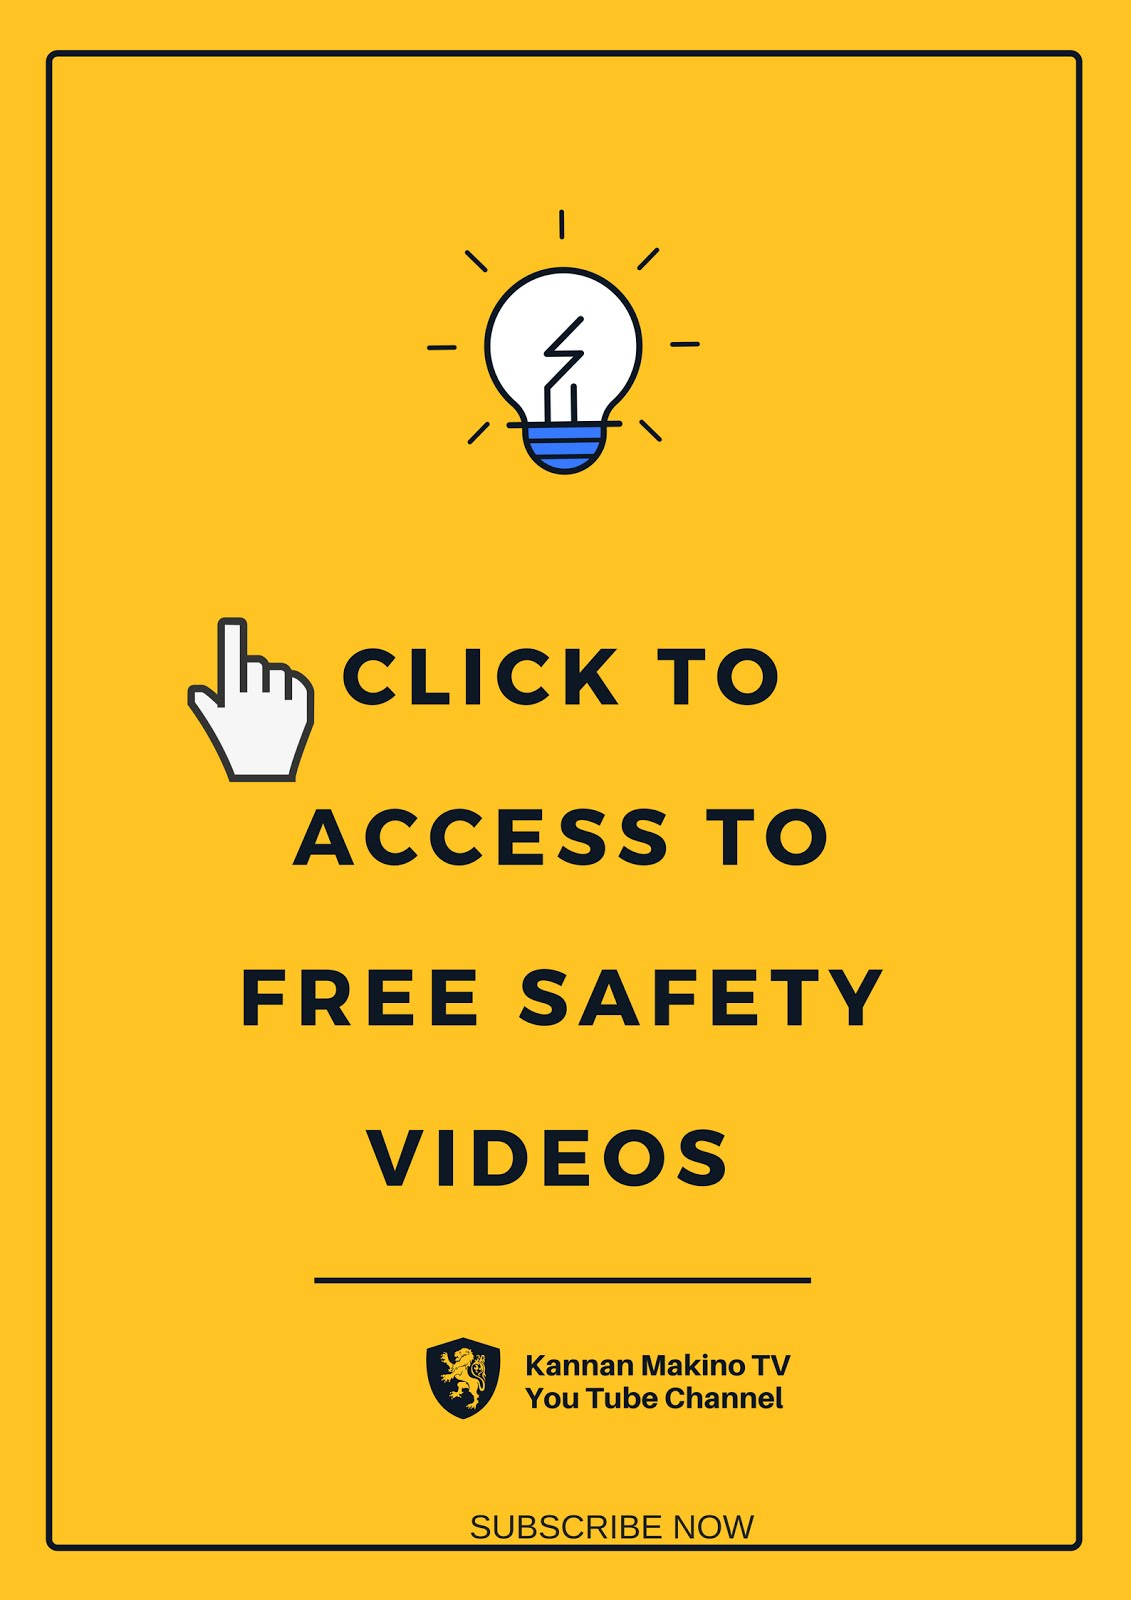 FREE SAFETY VIDEOS